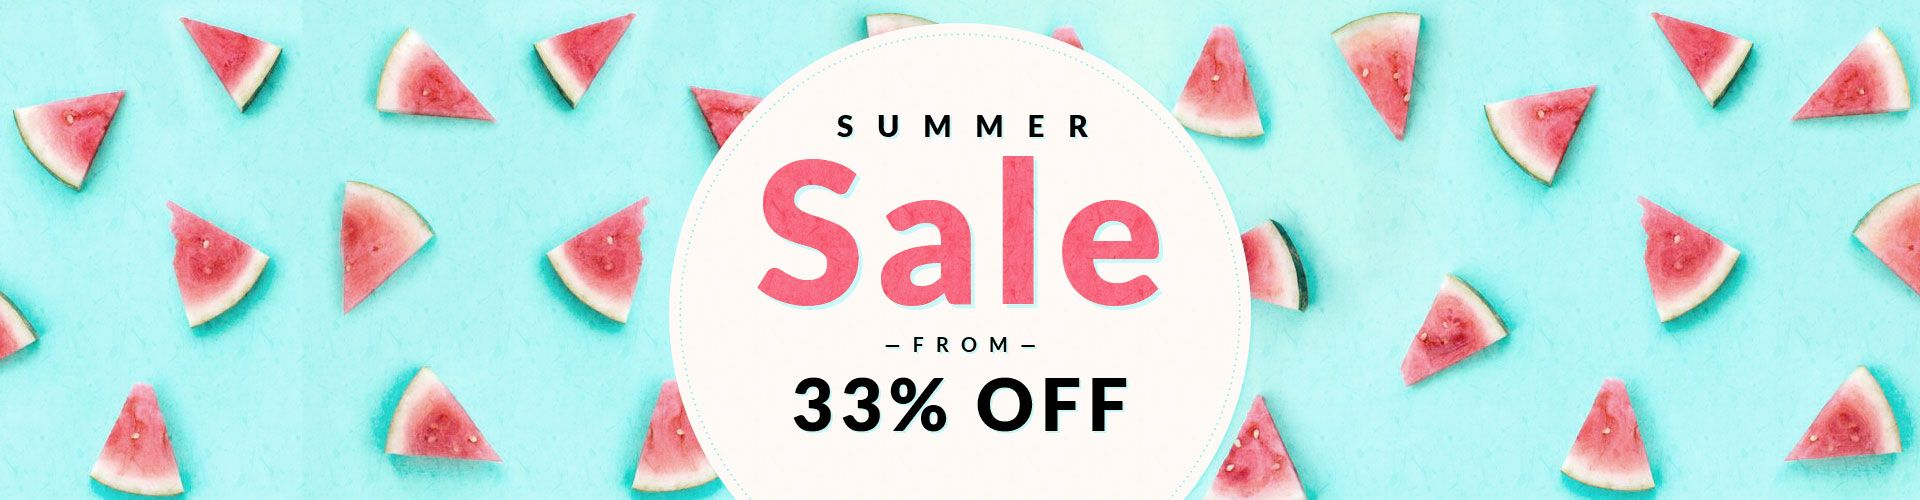 http://www.rosegal.com/promotion-summer-sale-special-364.html?lkid=207475